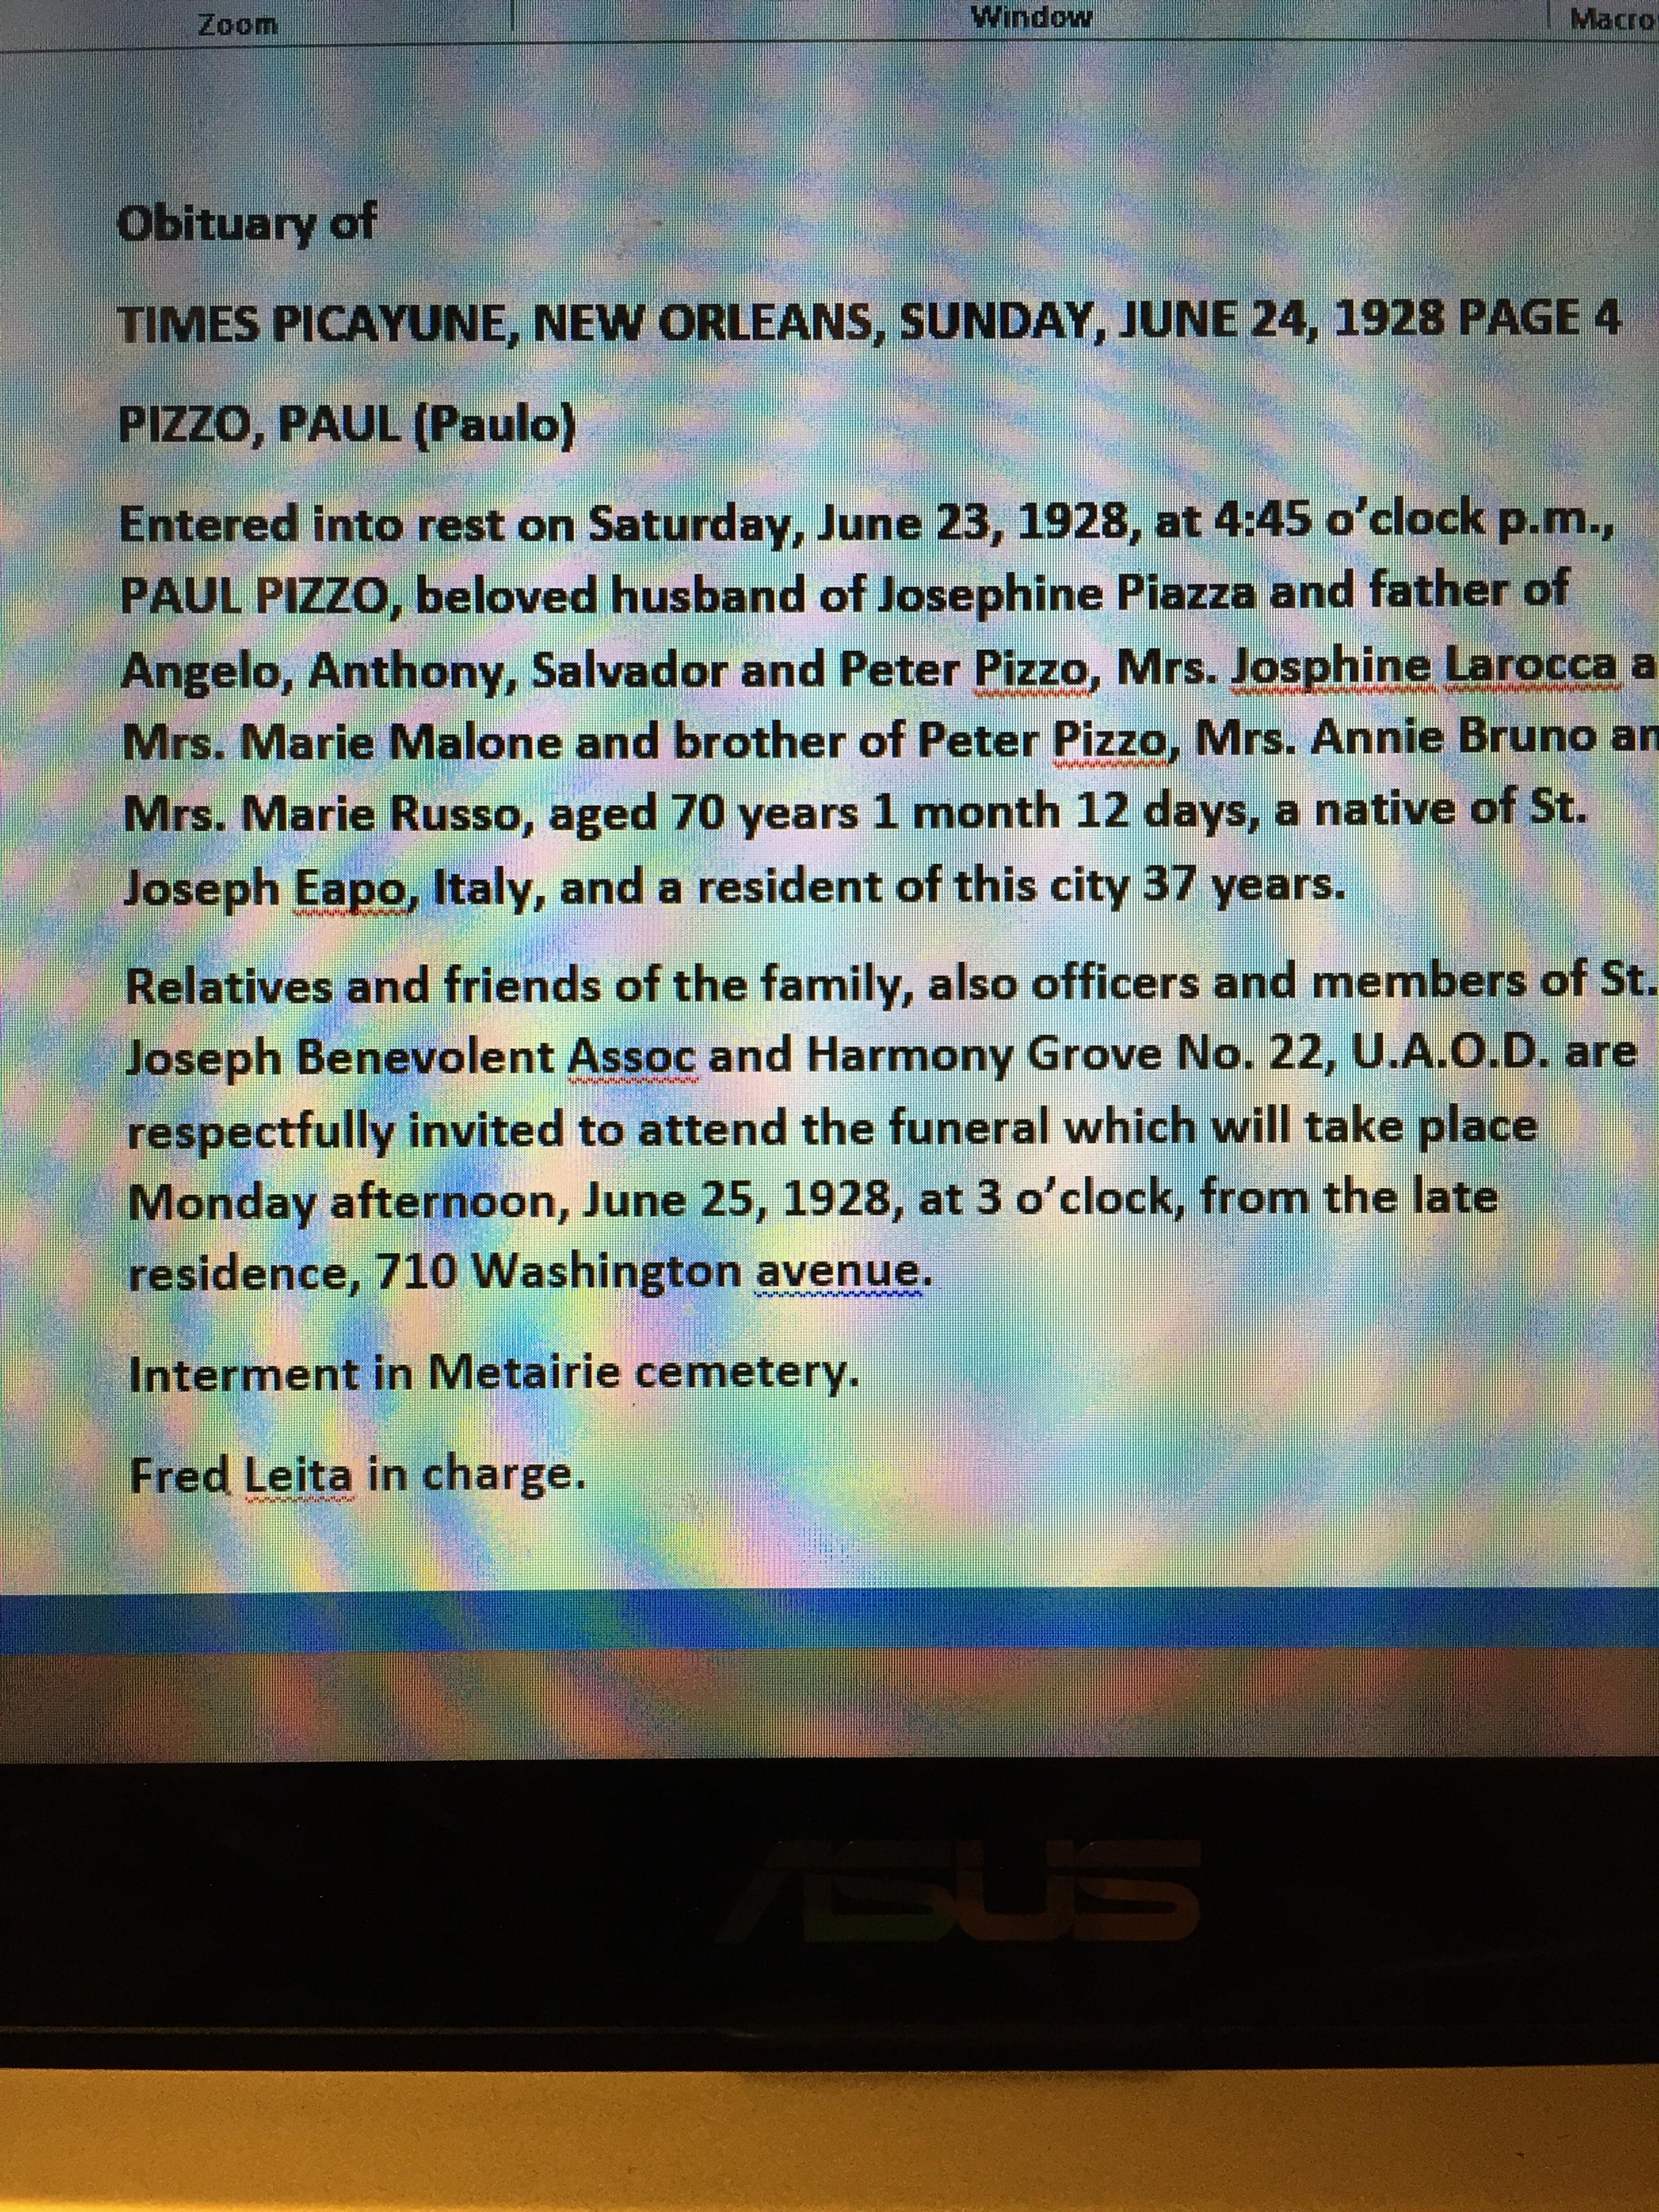 paul pizzo obituary new orleans times picayune photos and paul pizzo obituary new orleans times picayune photos and stories org